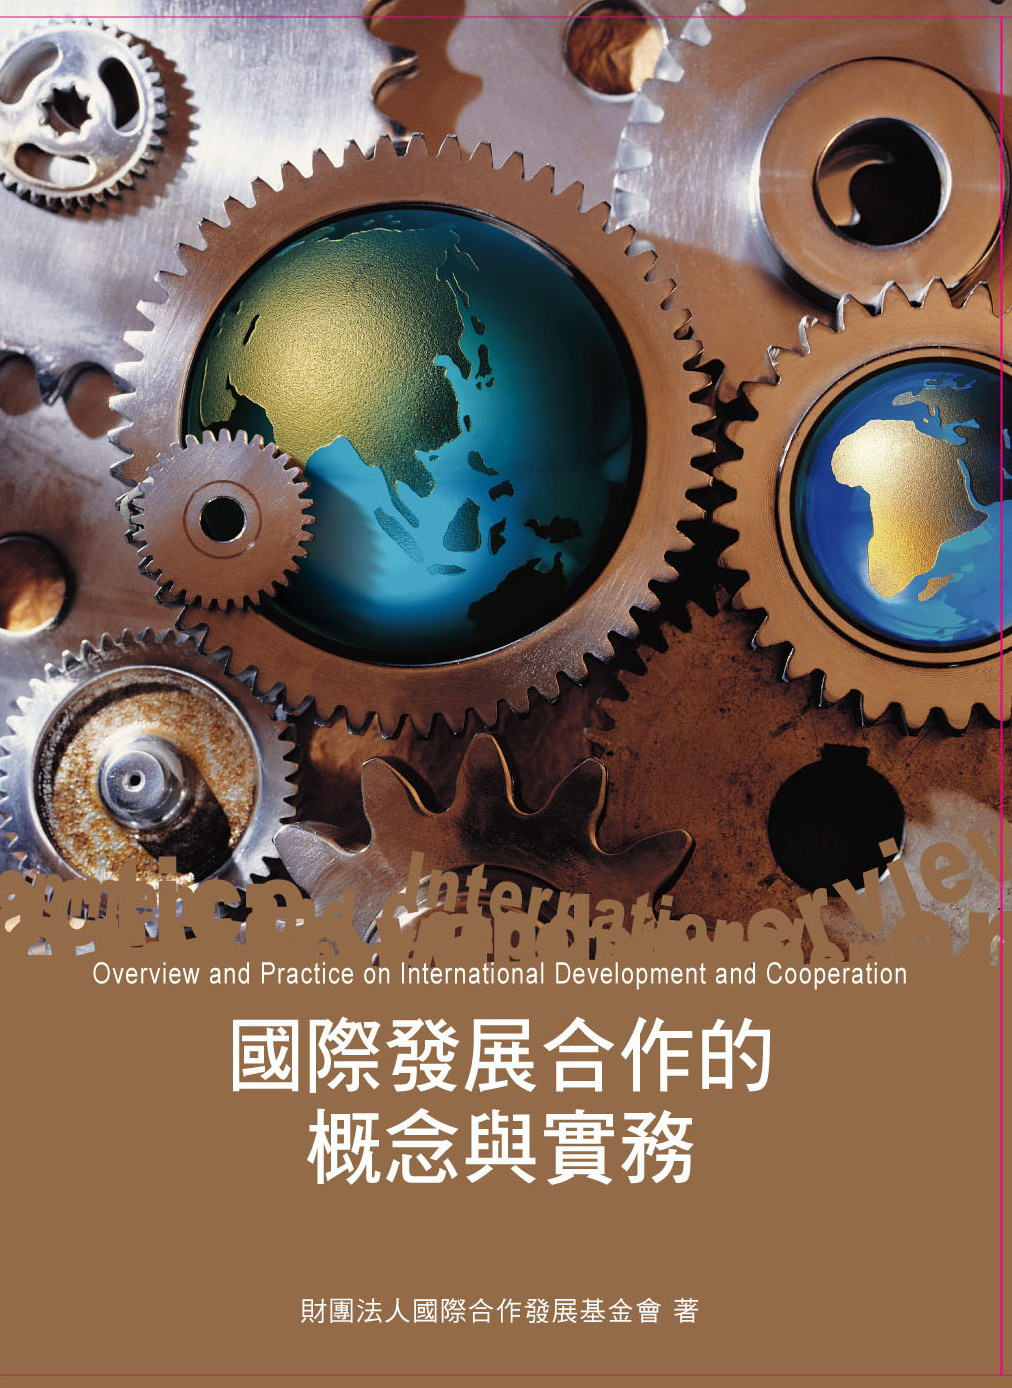 Overview and Practice on International Development and Cooperation